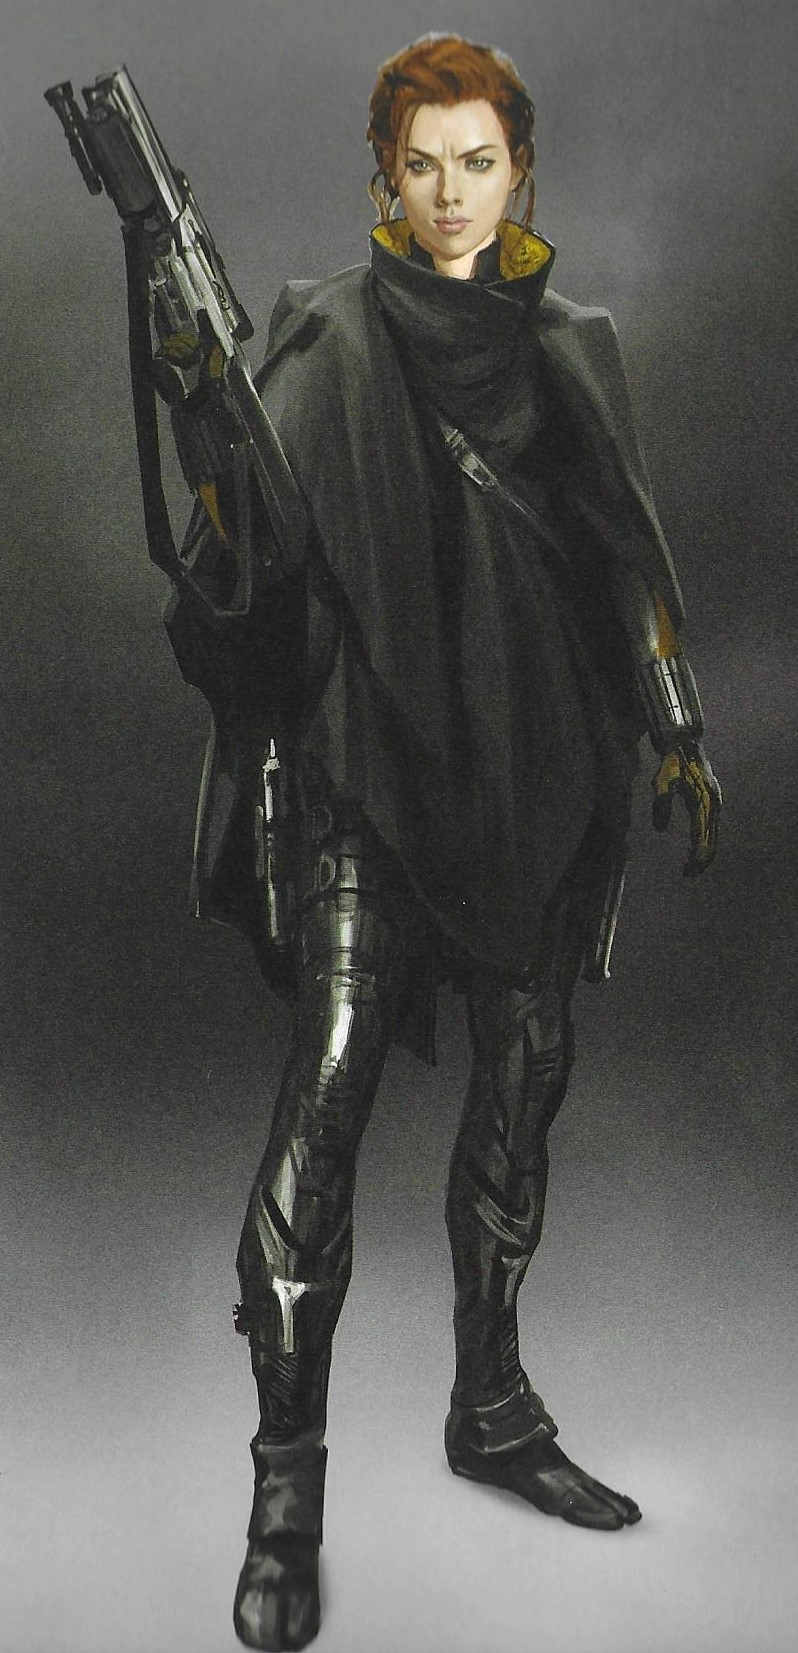 Avengers Endgame Concept Art Reveals Alternate Five Years Later Hawkeye Ronin And Black Wido Black Widow Costume Black Widow Marvel Captain Marvel Costume